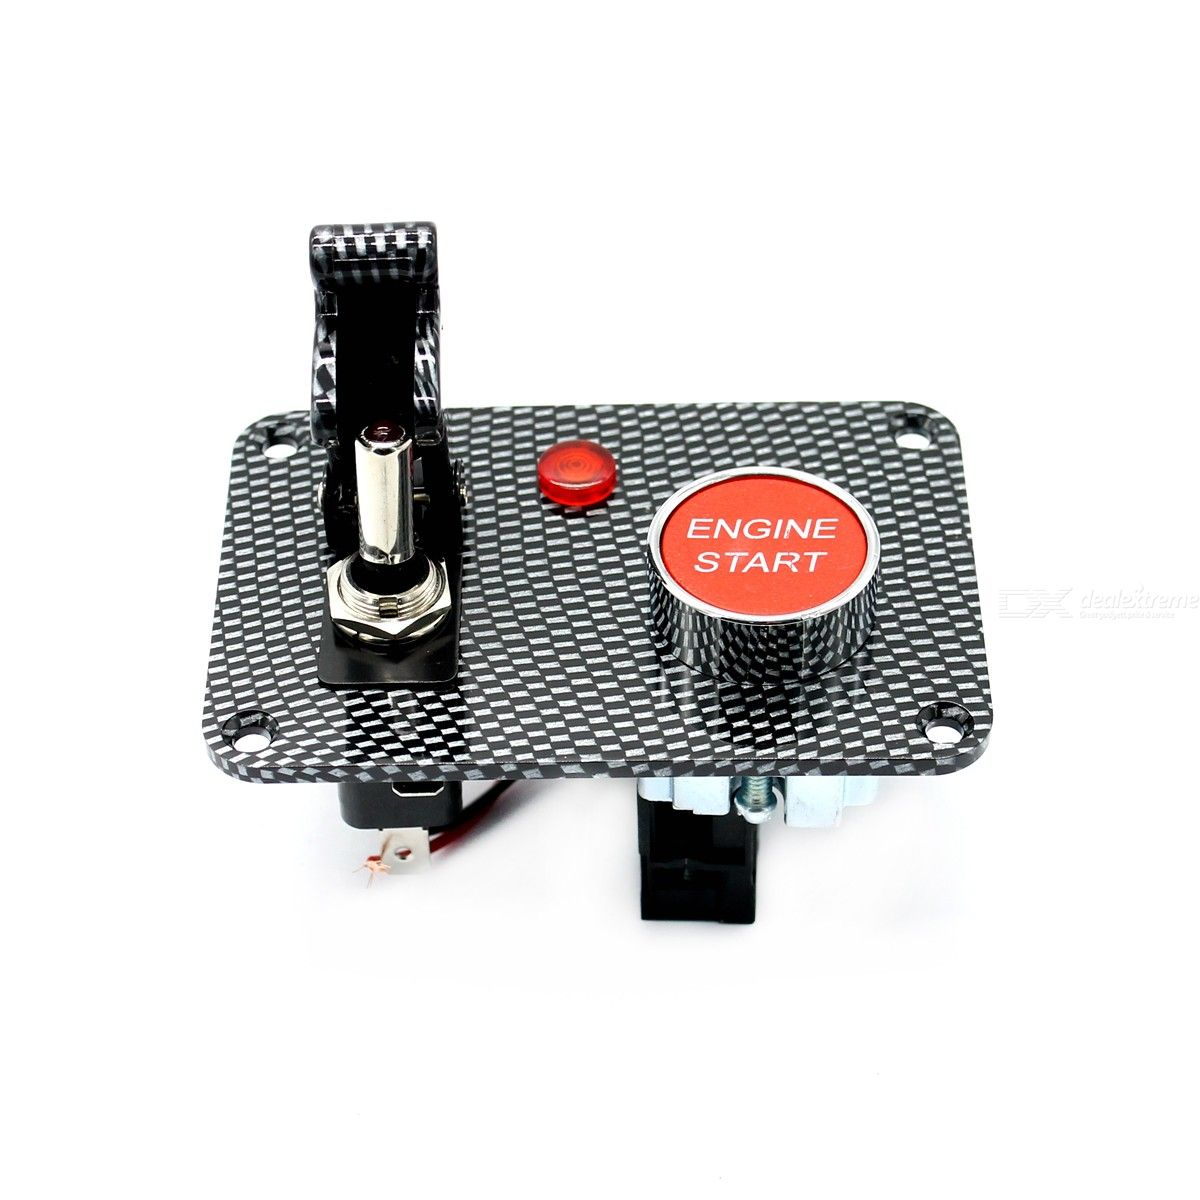 S3403-Z Carbon fiber panel two sets of toggle switch panel 1 carbon fiber  aviation cover 1 ignition switch (with light)